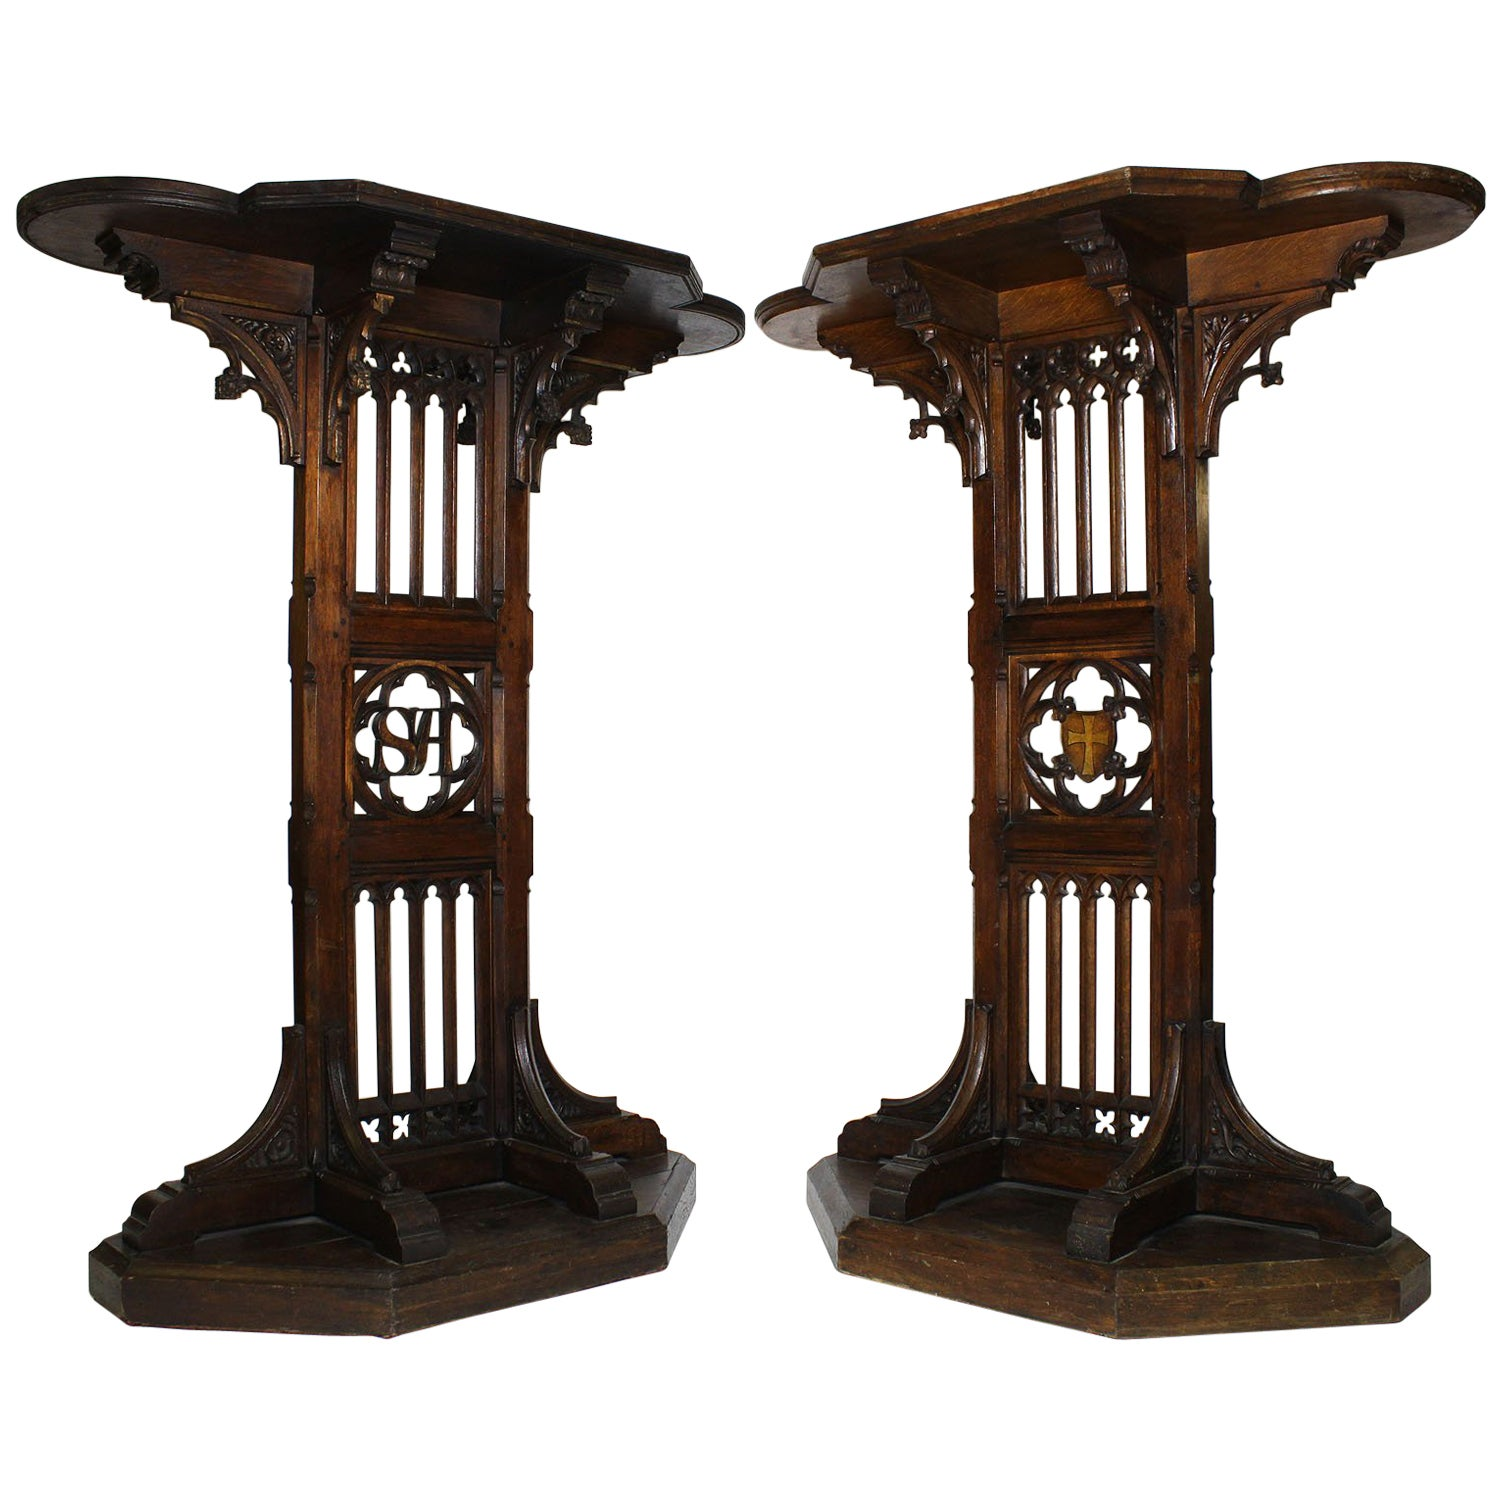 Pair of Tall French 19th Century Gothic Revival Style Carved Oak Church Pedestal